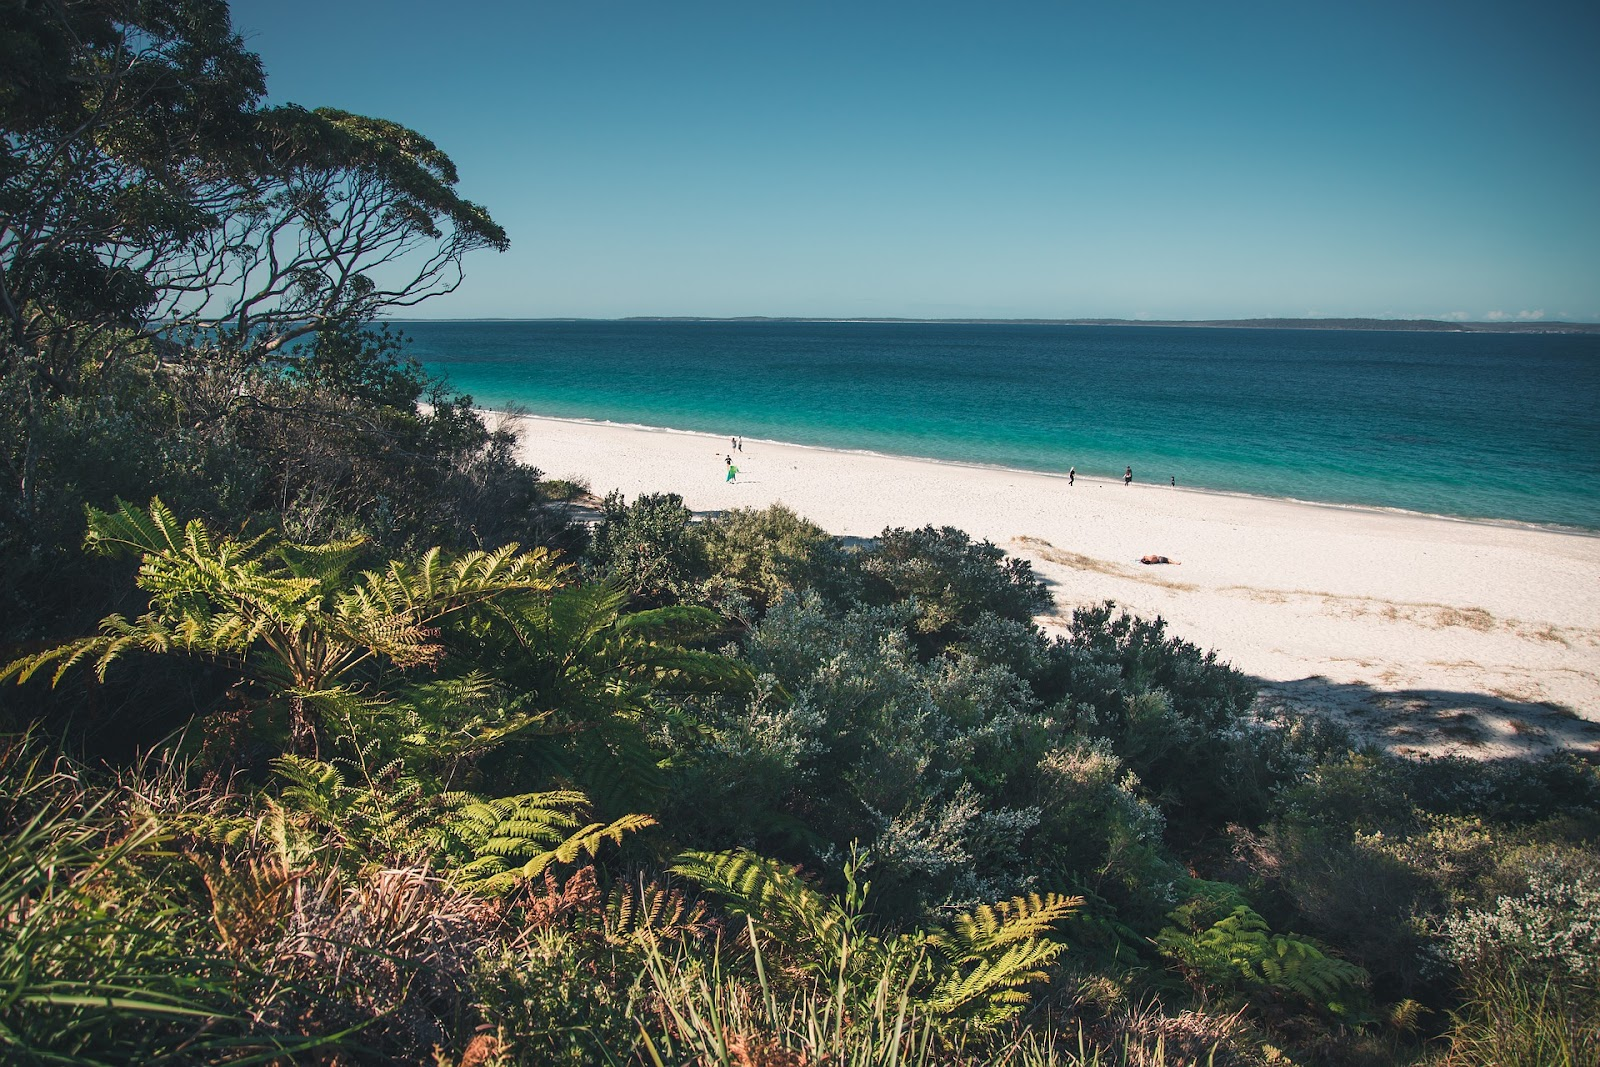 jervis bay secluded beach turquoise water green plants white sand australia